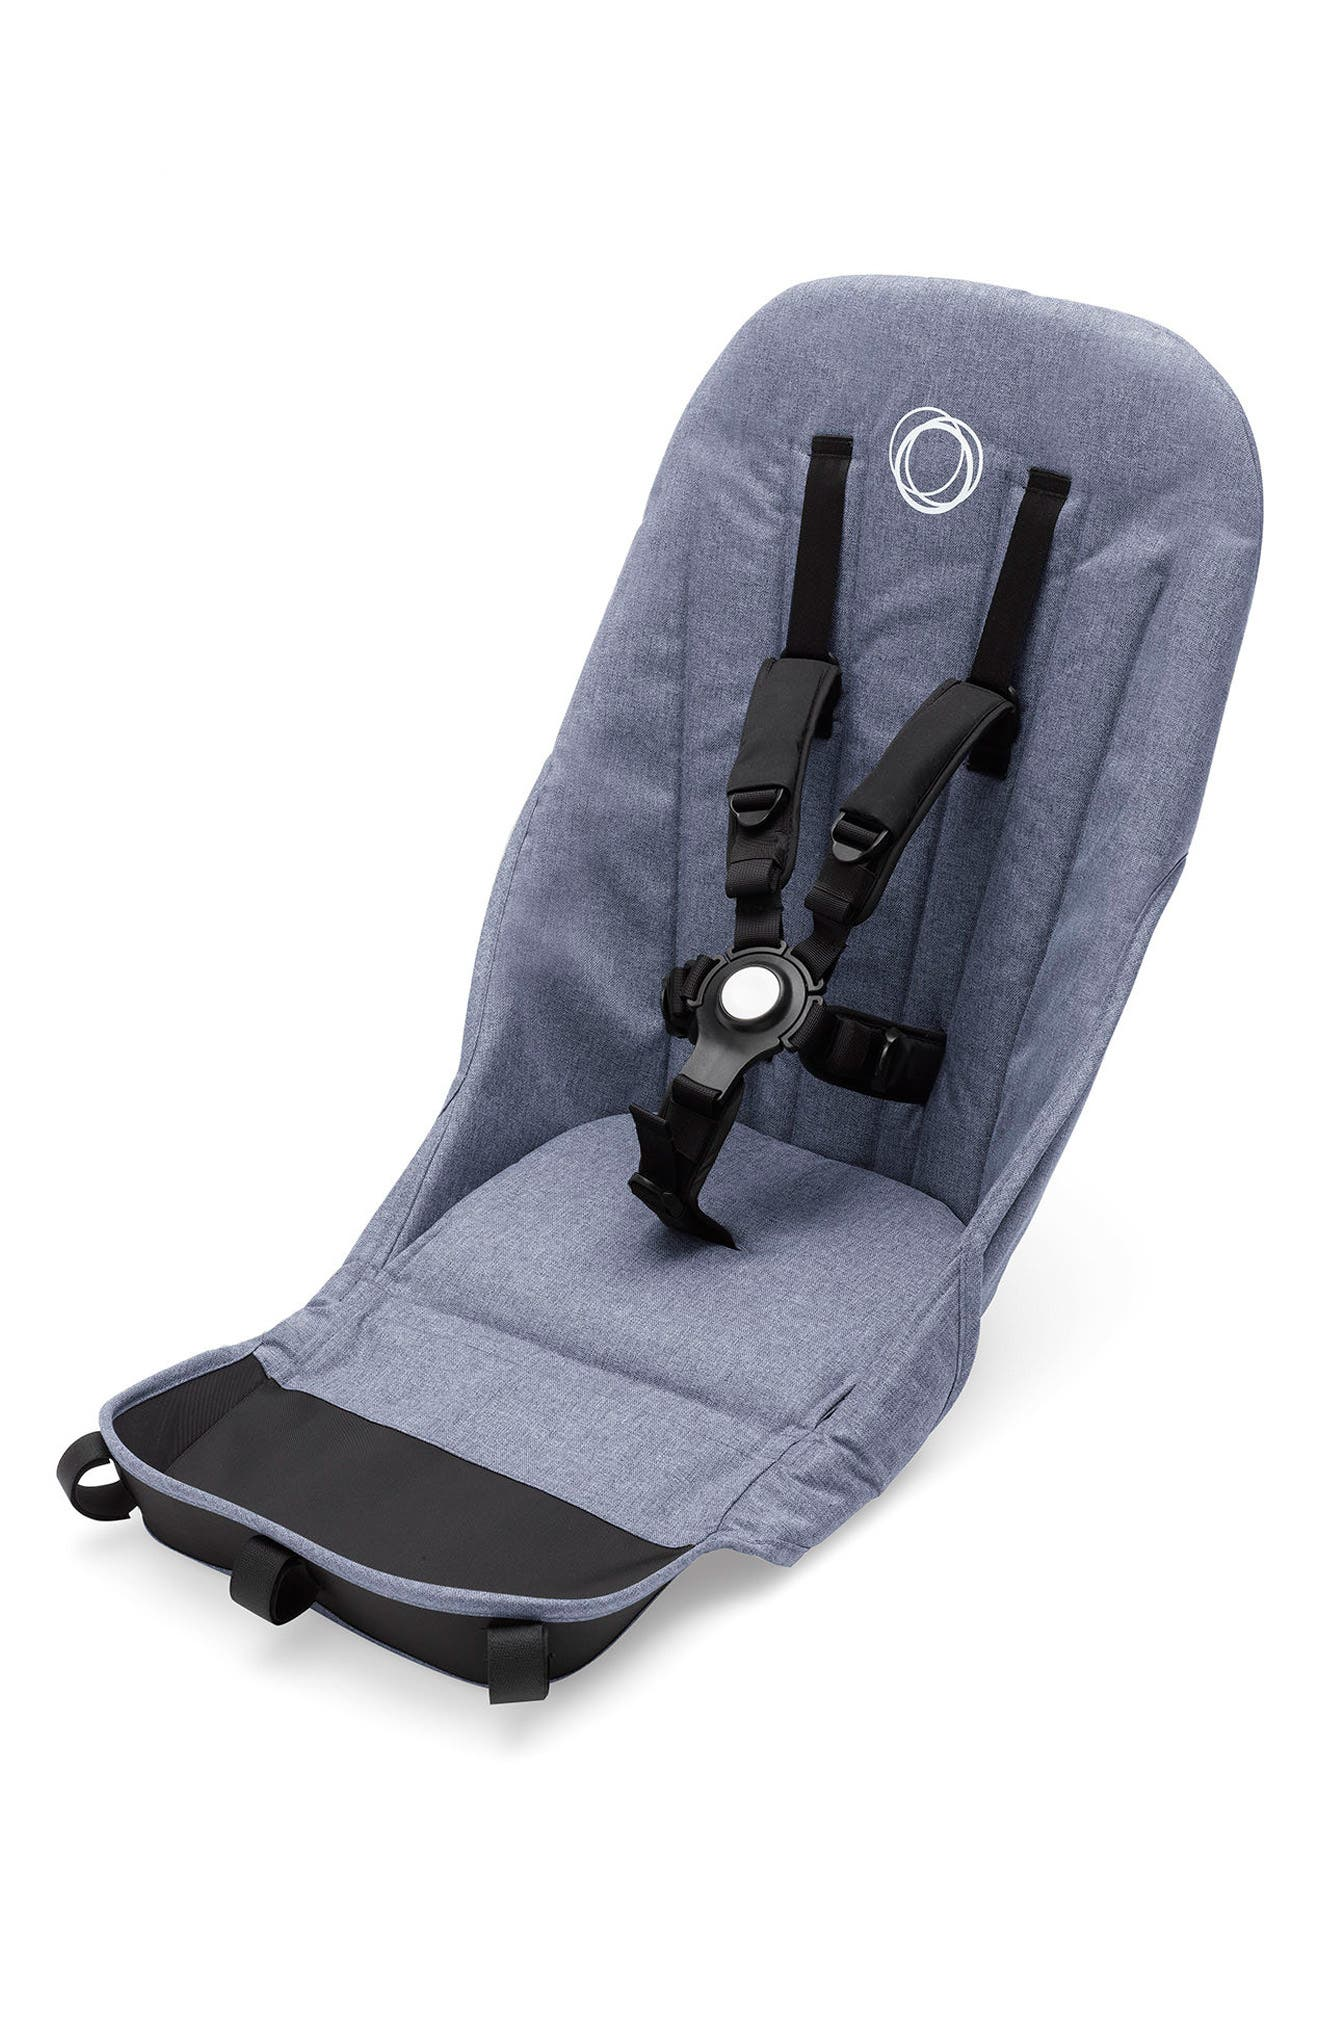 Main Image - Bugaboo Seat Fabric for Donkey 2 Stroller